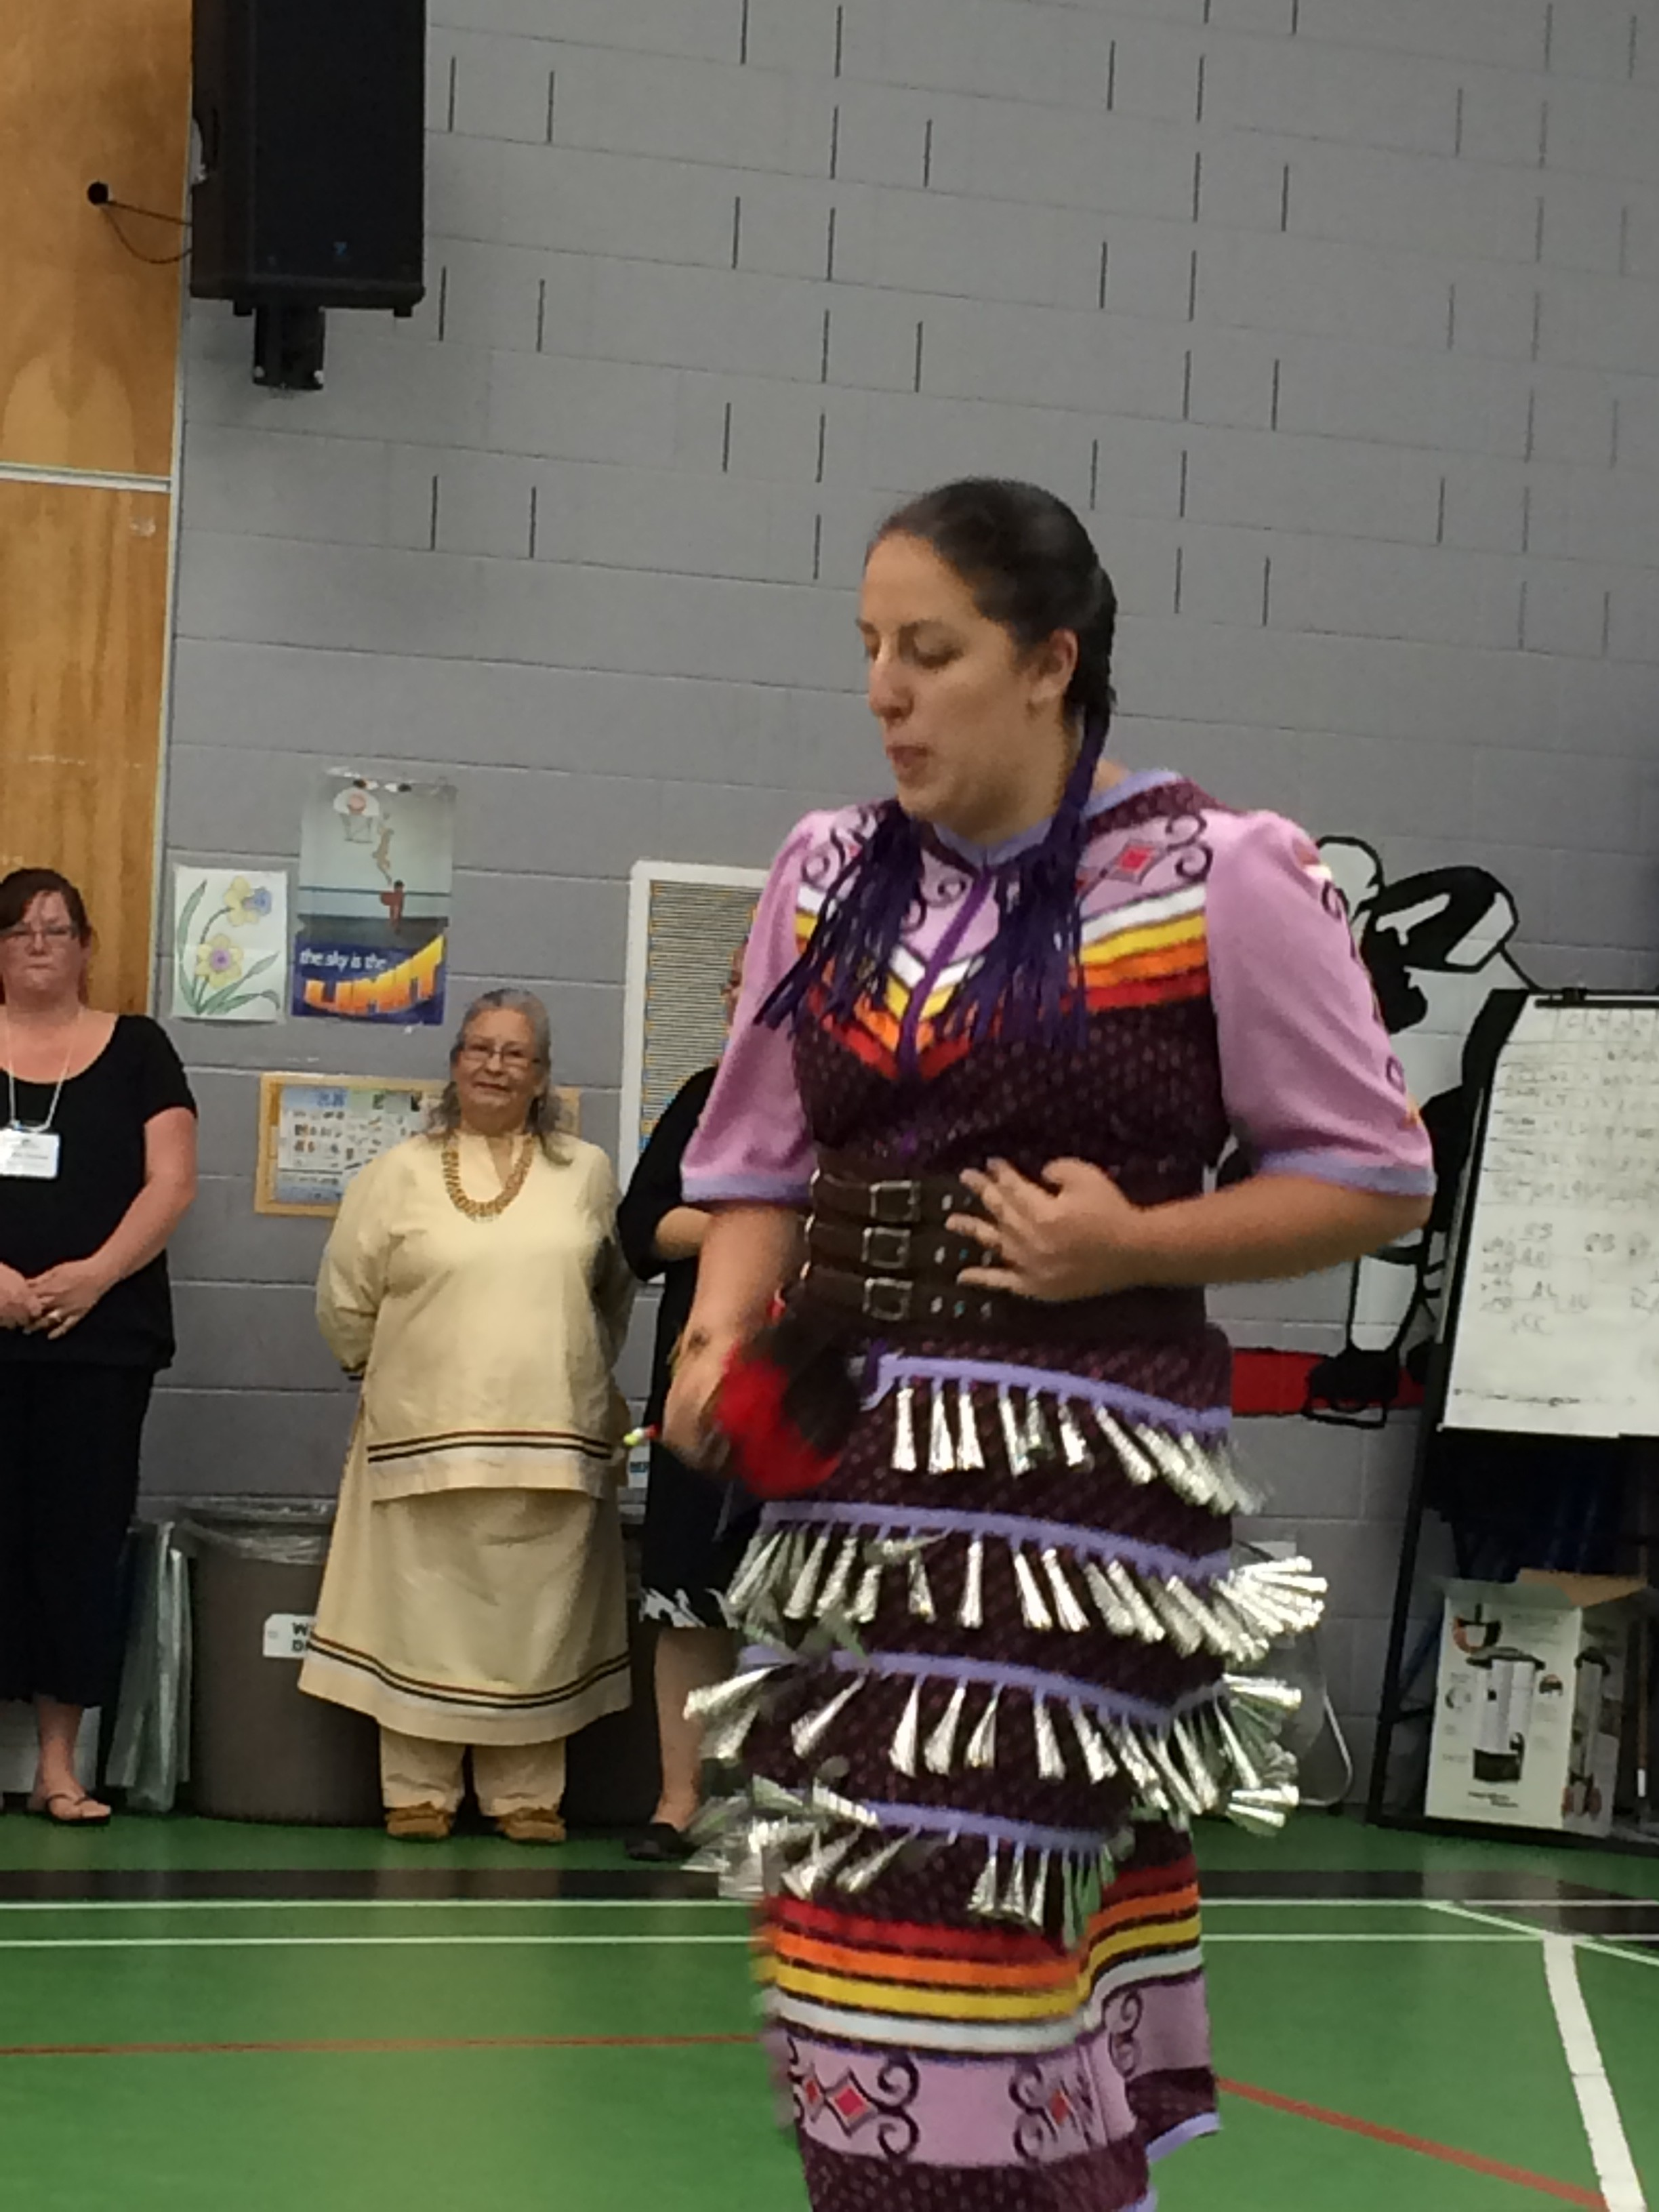 A Mi'kmaq dancer performs a traditional dance during a welcoming ceremony on Lennox Island. About 400 Mi'kmaq live on the island; another 500 live off-island. Mi'kmaq once inhabited huge areas of eastern Canada and New York.  Photo by Jerry Ondash